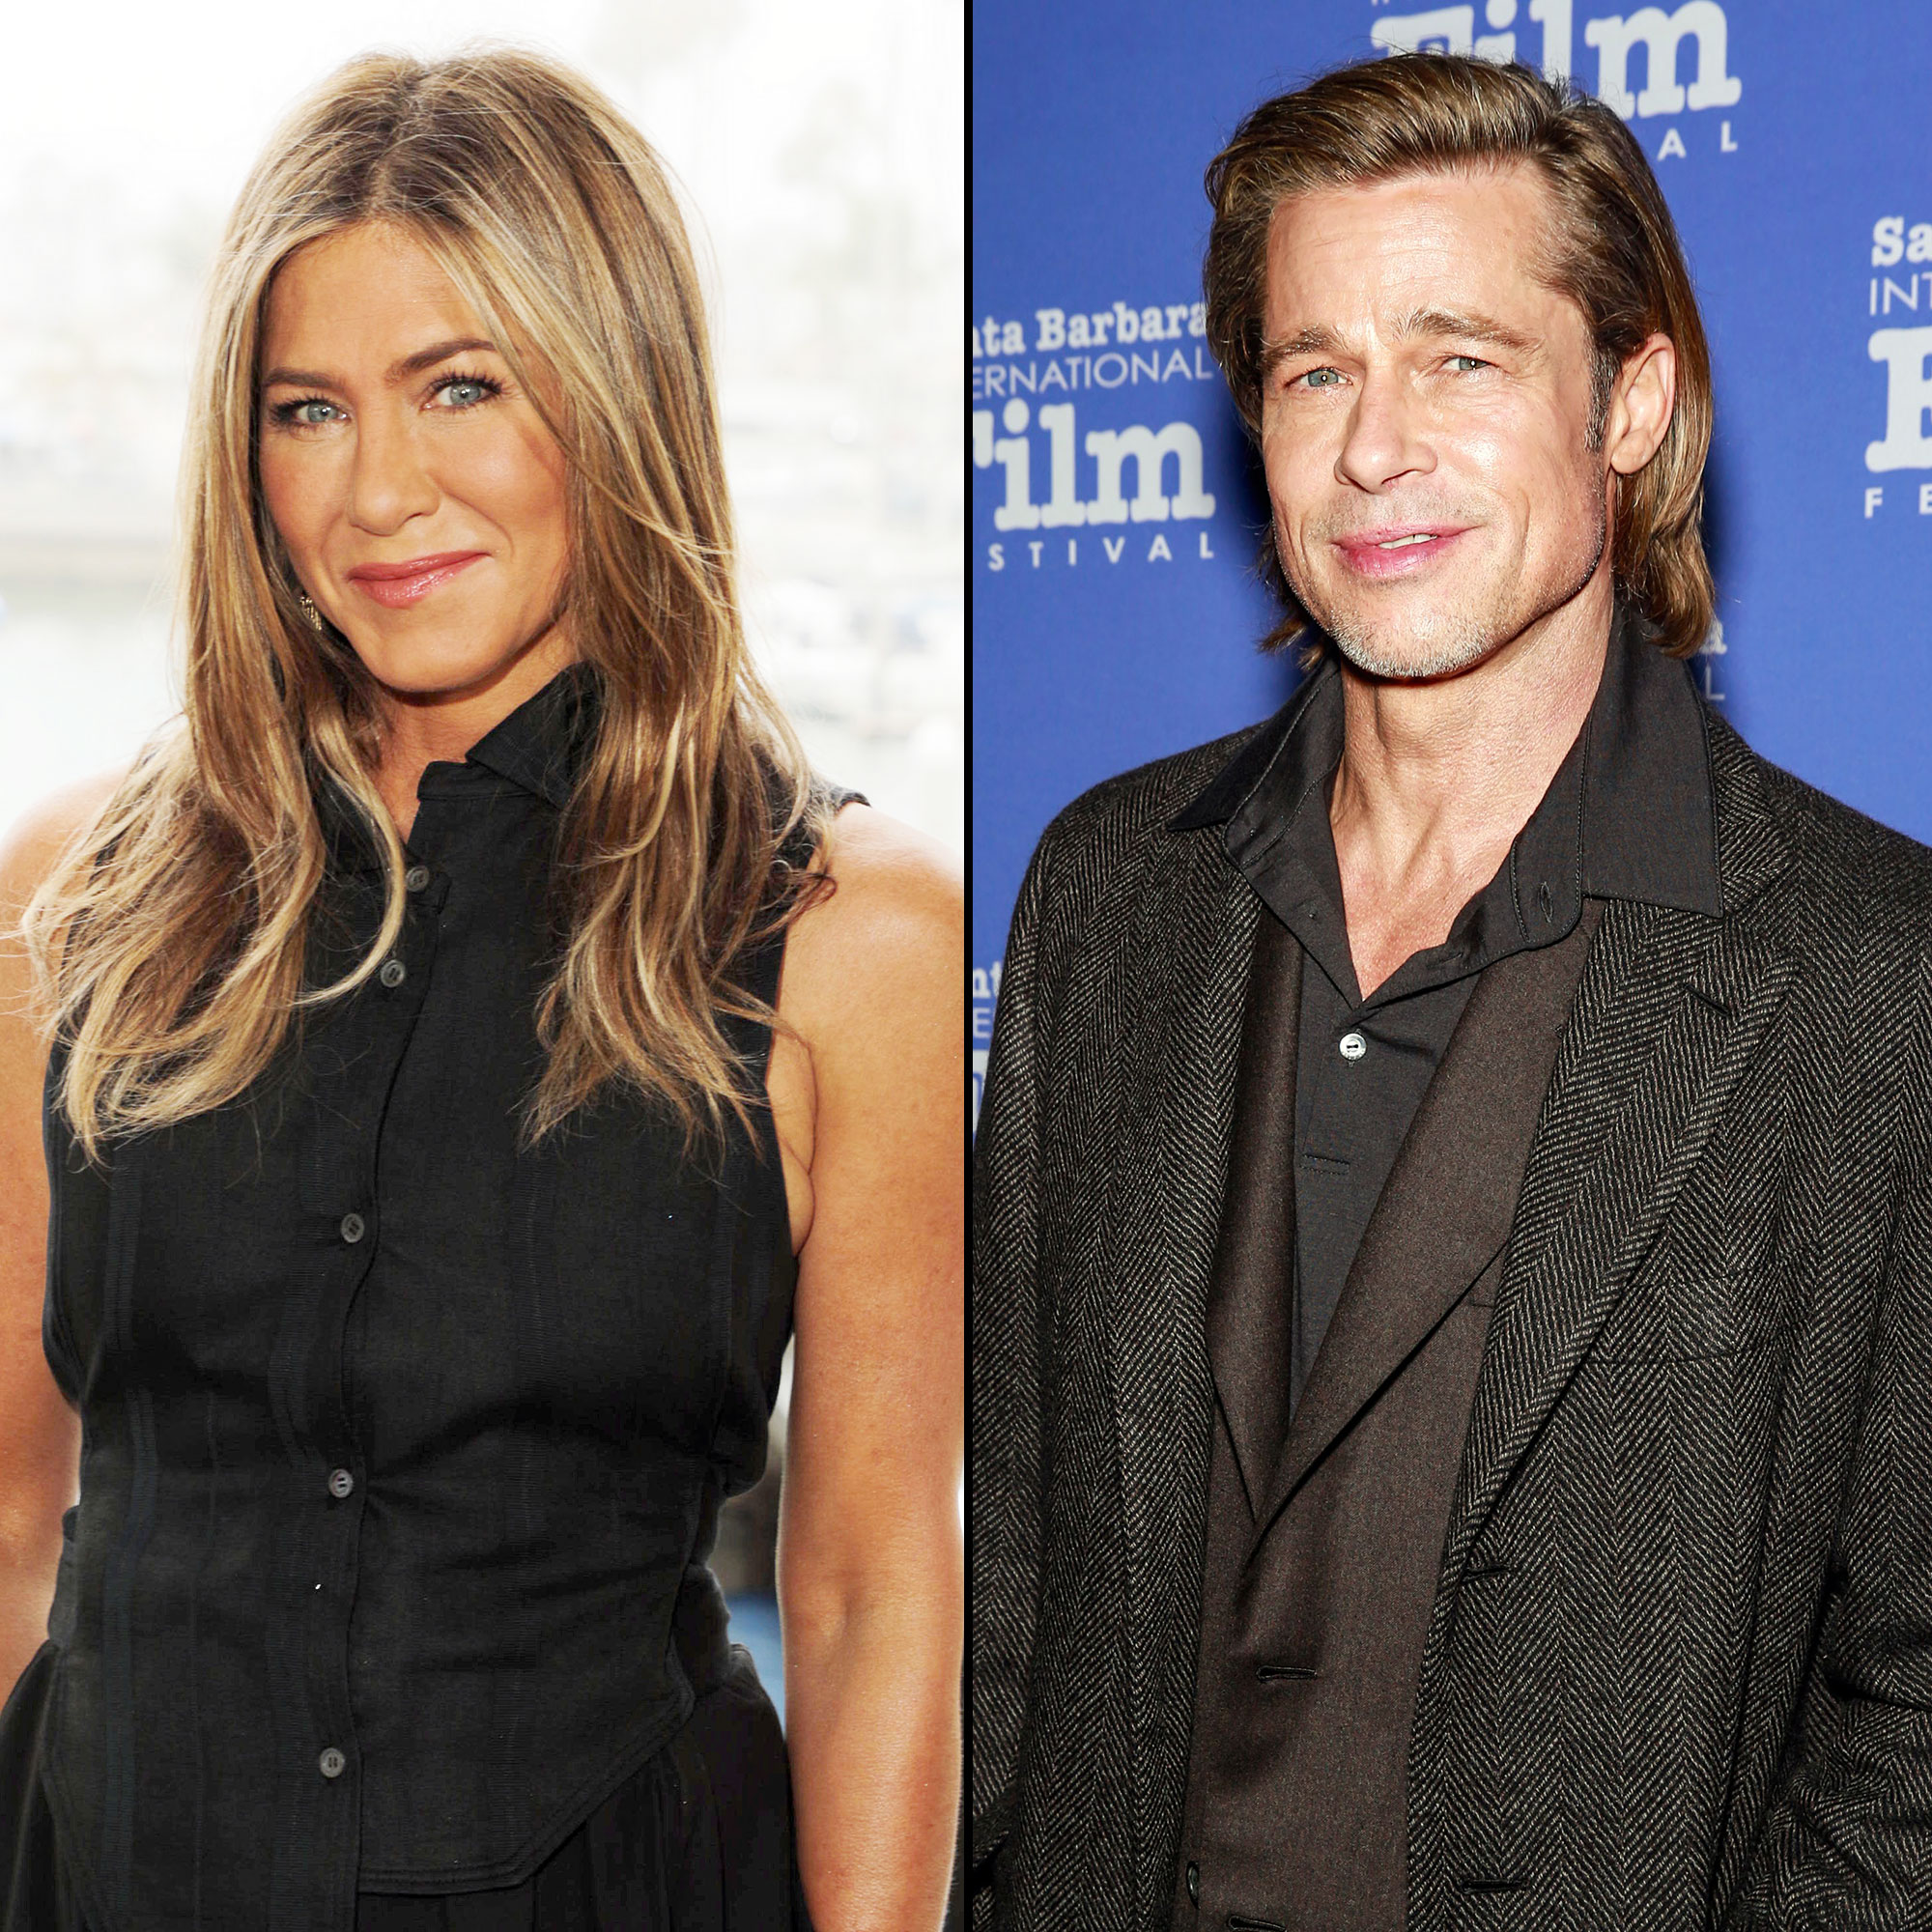 Jennifer Aniston and Brad Pitt Think Its Hysterical People Want Them Back Together